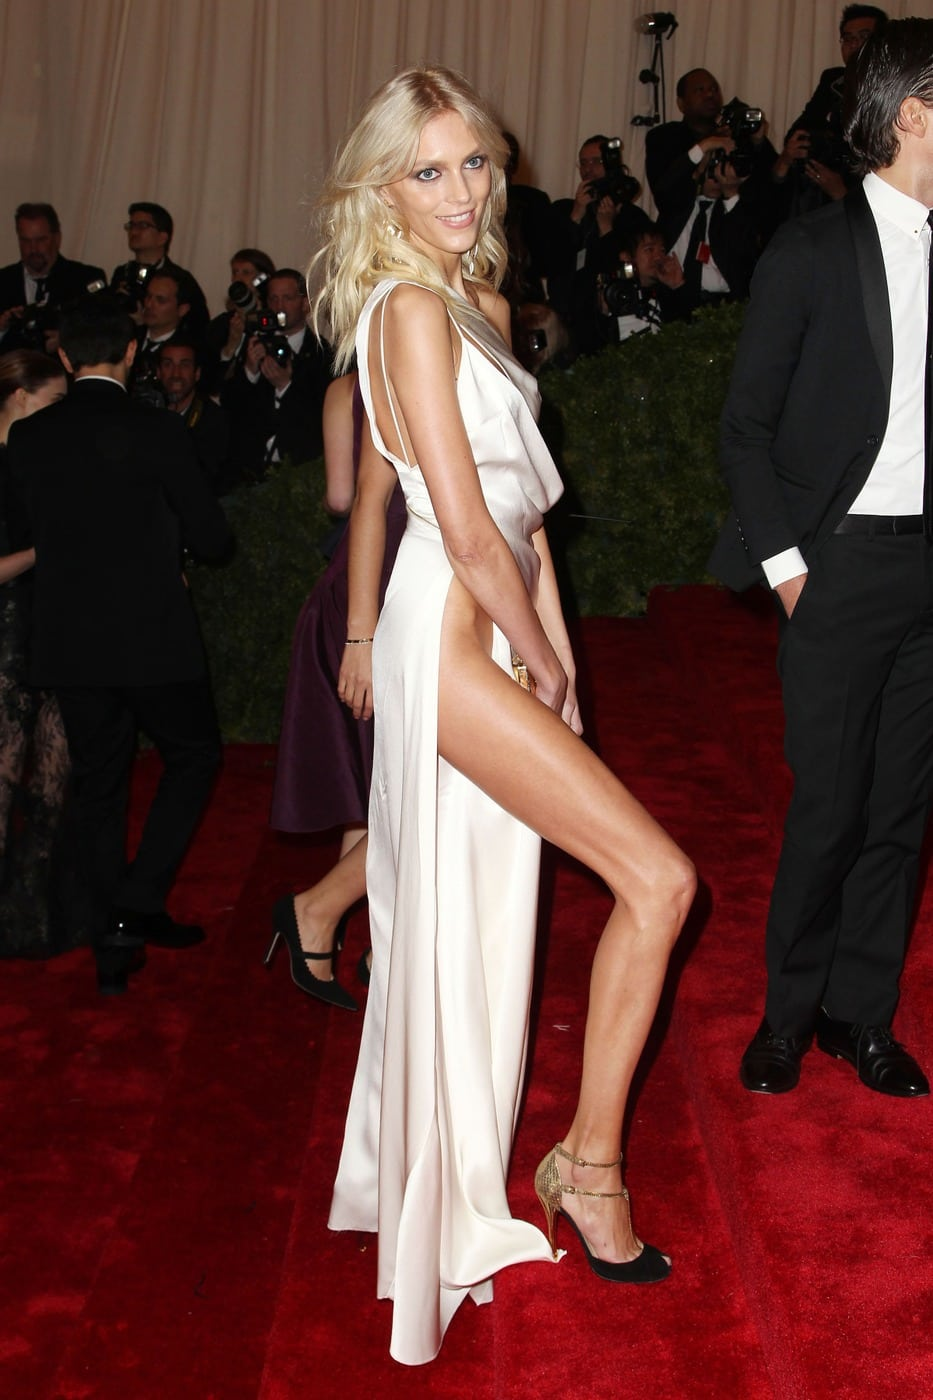 Anja Rubik Amazing Hot Legs On Red Carpet - Anja Rubik Amazing Hot Legs On Red Carpet